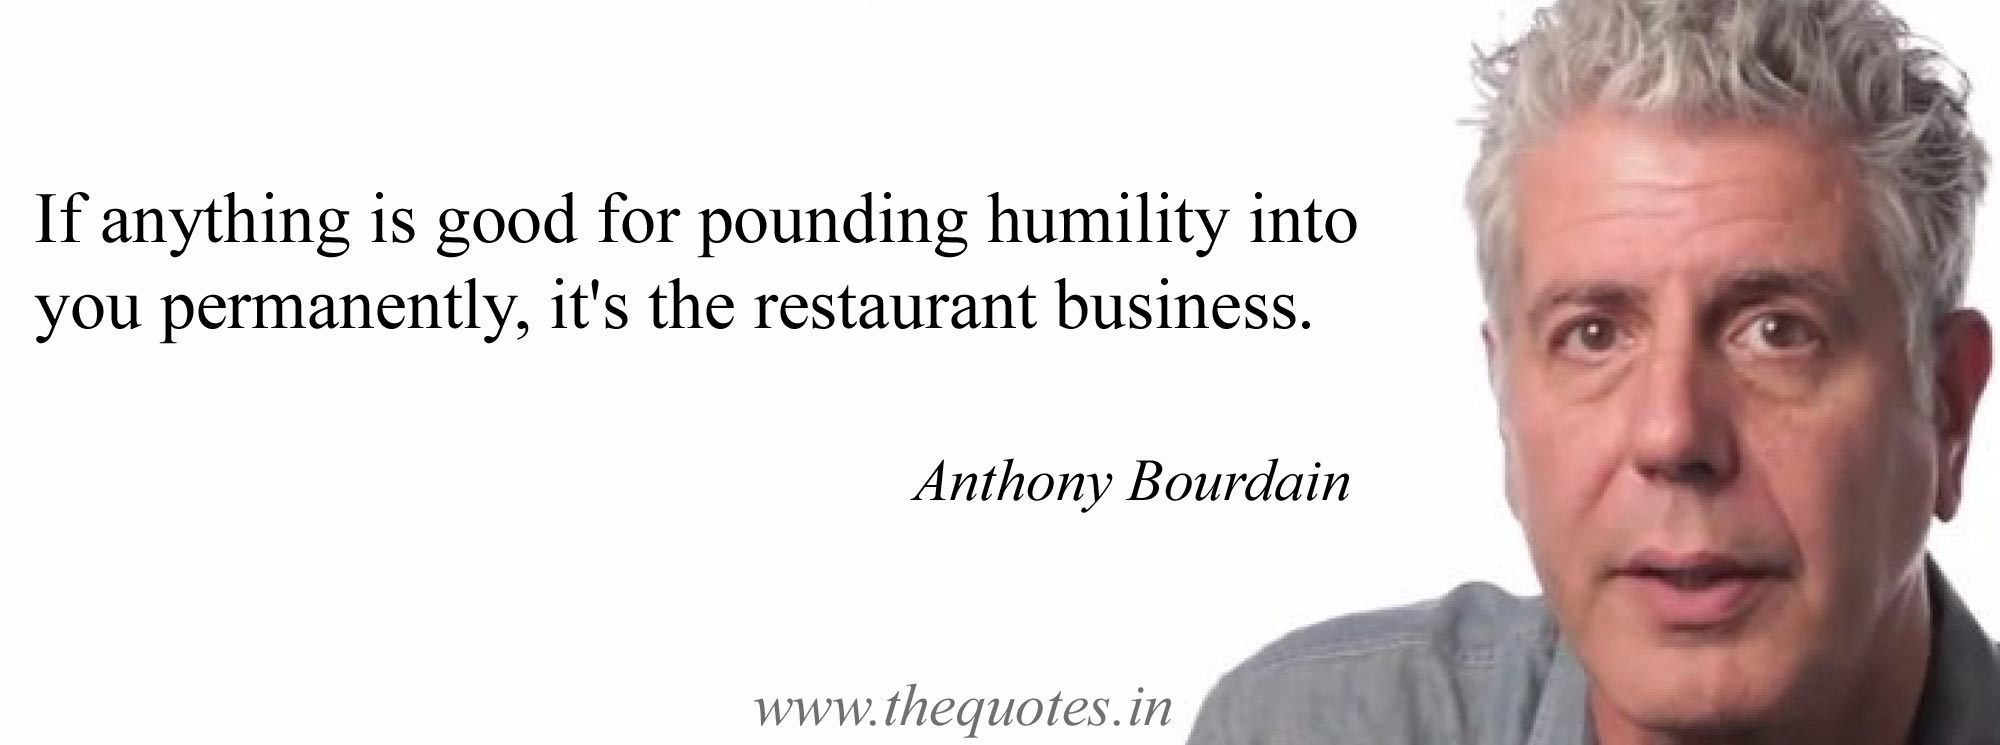 Picture of Anthony Bourdain with the quote